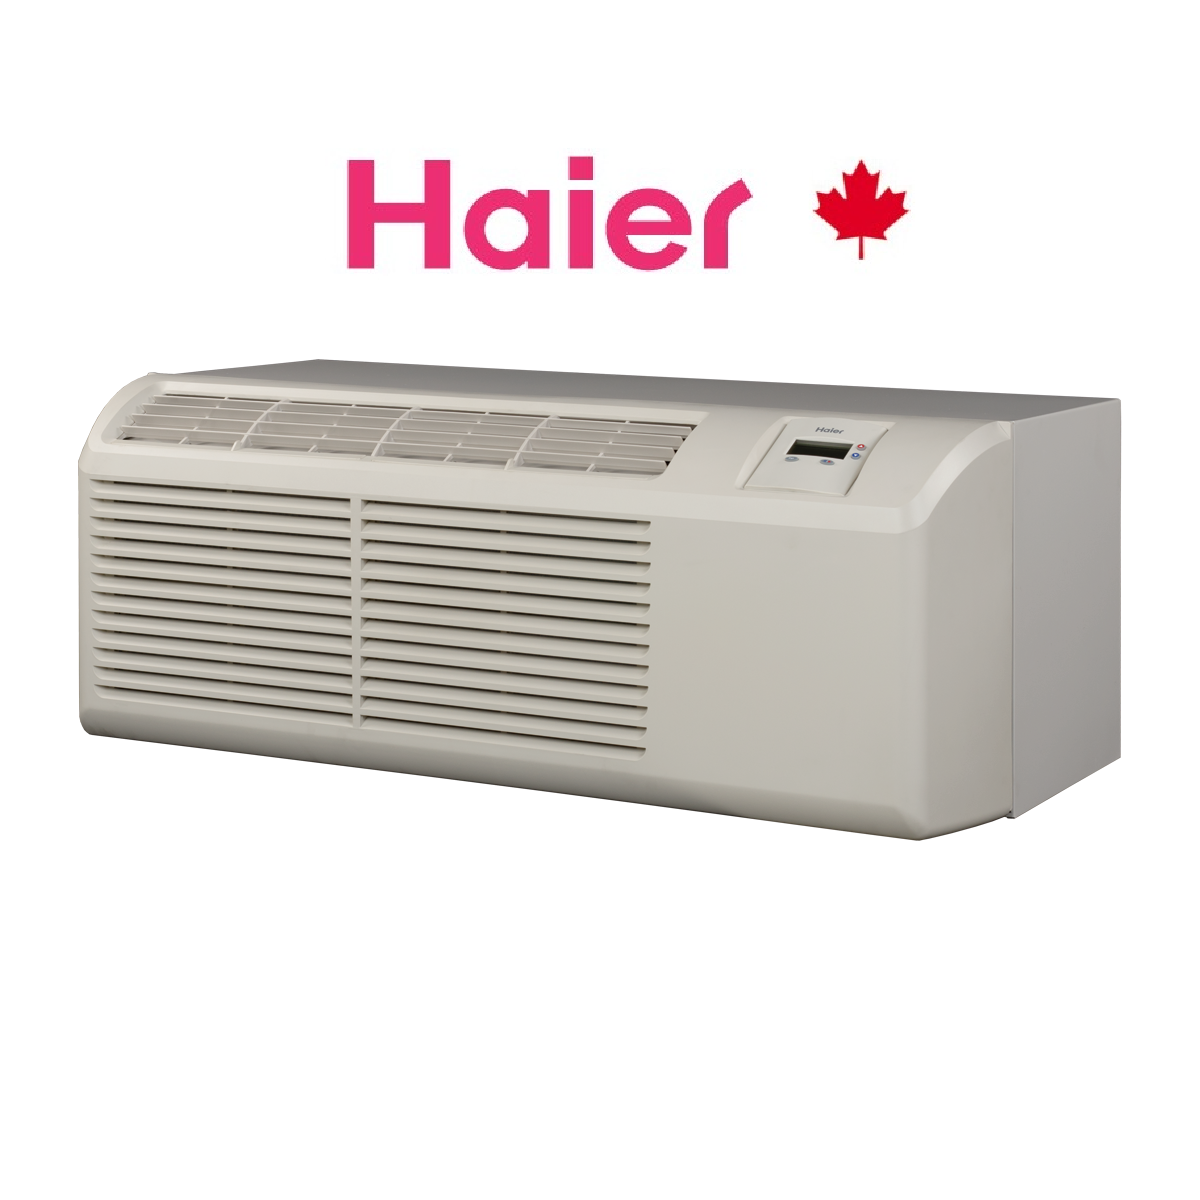 Heating And Air Conditioning Units : Haier ptac units pthh uac heat pump cooling and heating